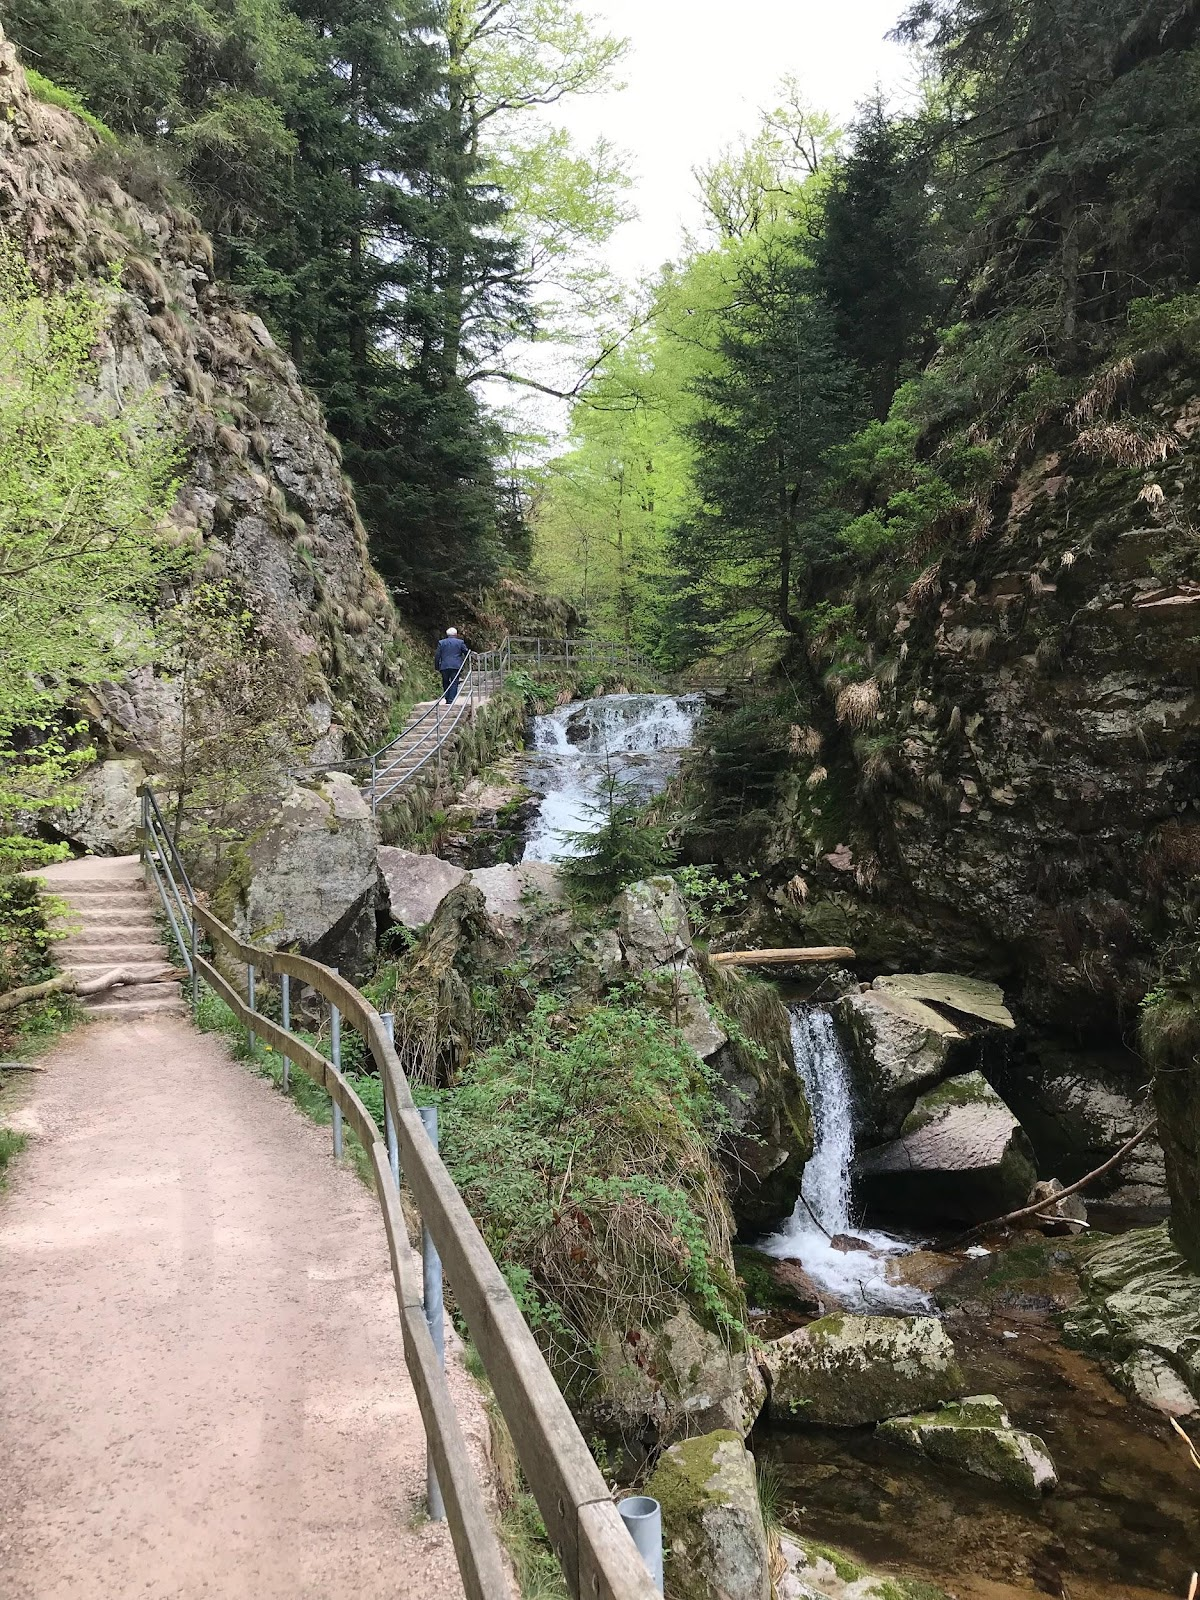 man walking up path next to allerheiligen waterfalls in germany surrounded by tall mountains and dense forest. See Allerheiligen waterfalls during our Black Forest Road Trip itinerary.